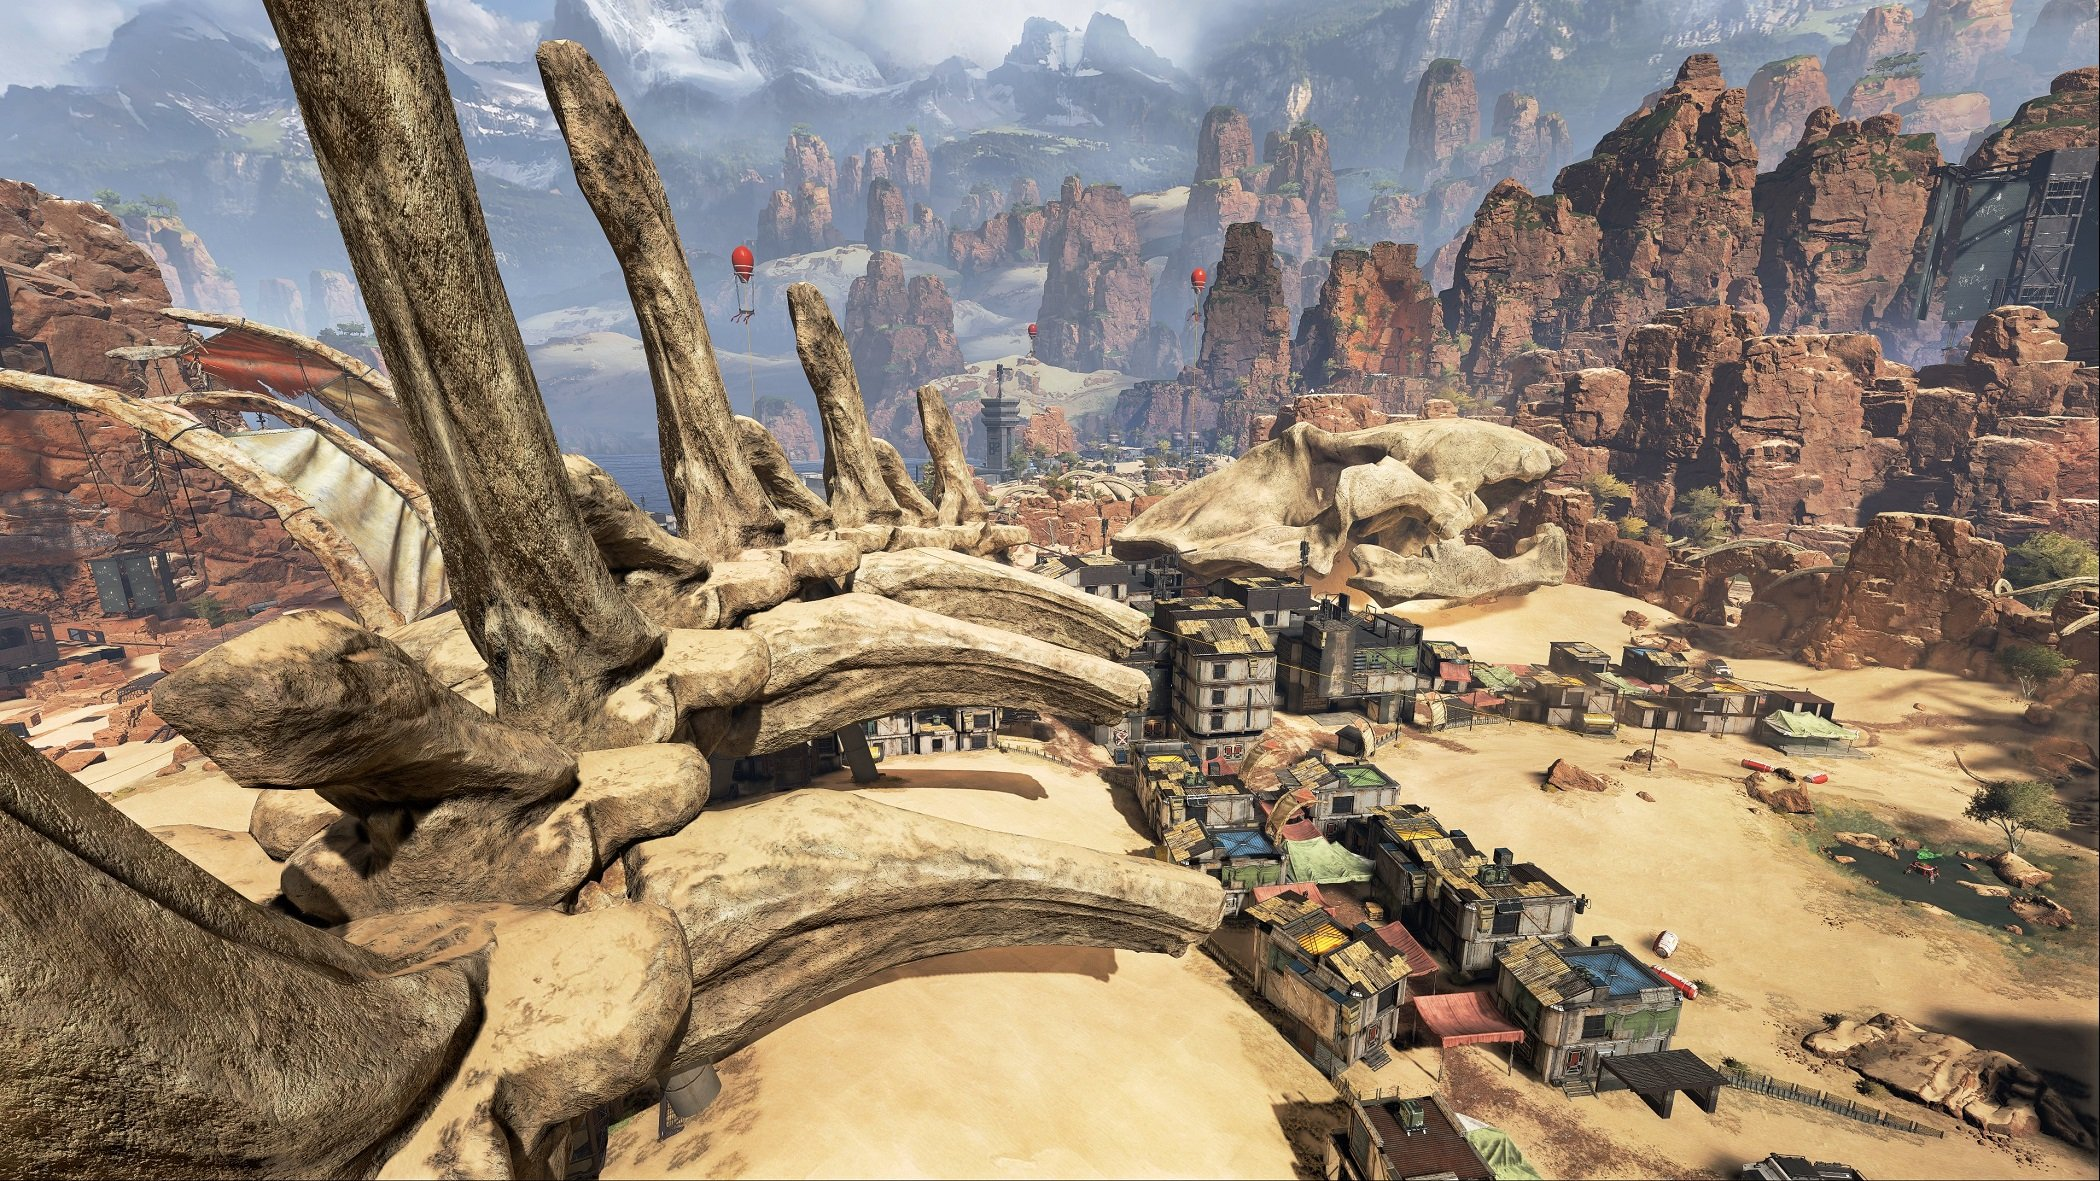 Apex Legends Update 1.03 Brings Valentines Day Items, Performance and Stability Fixes